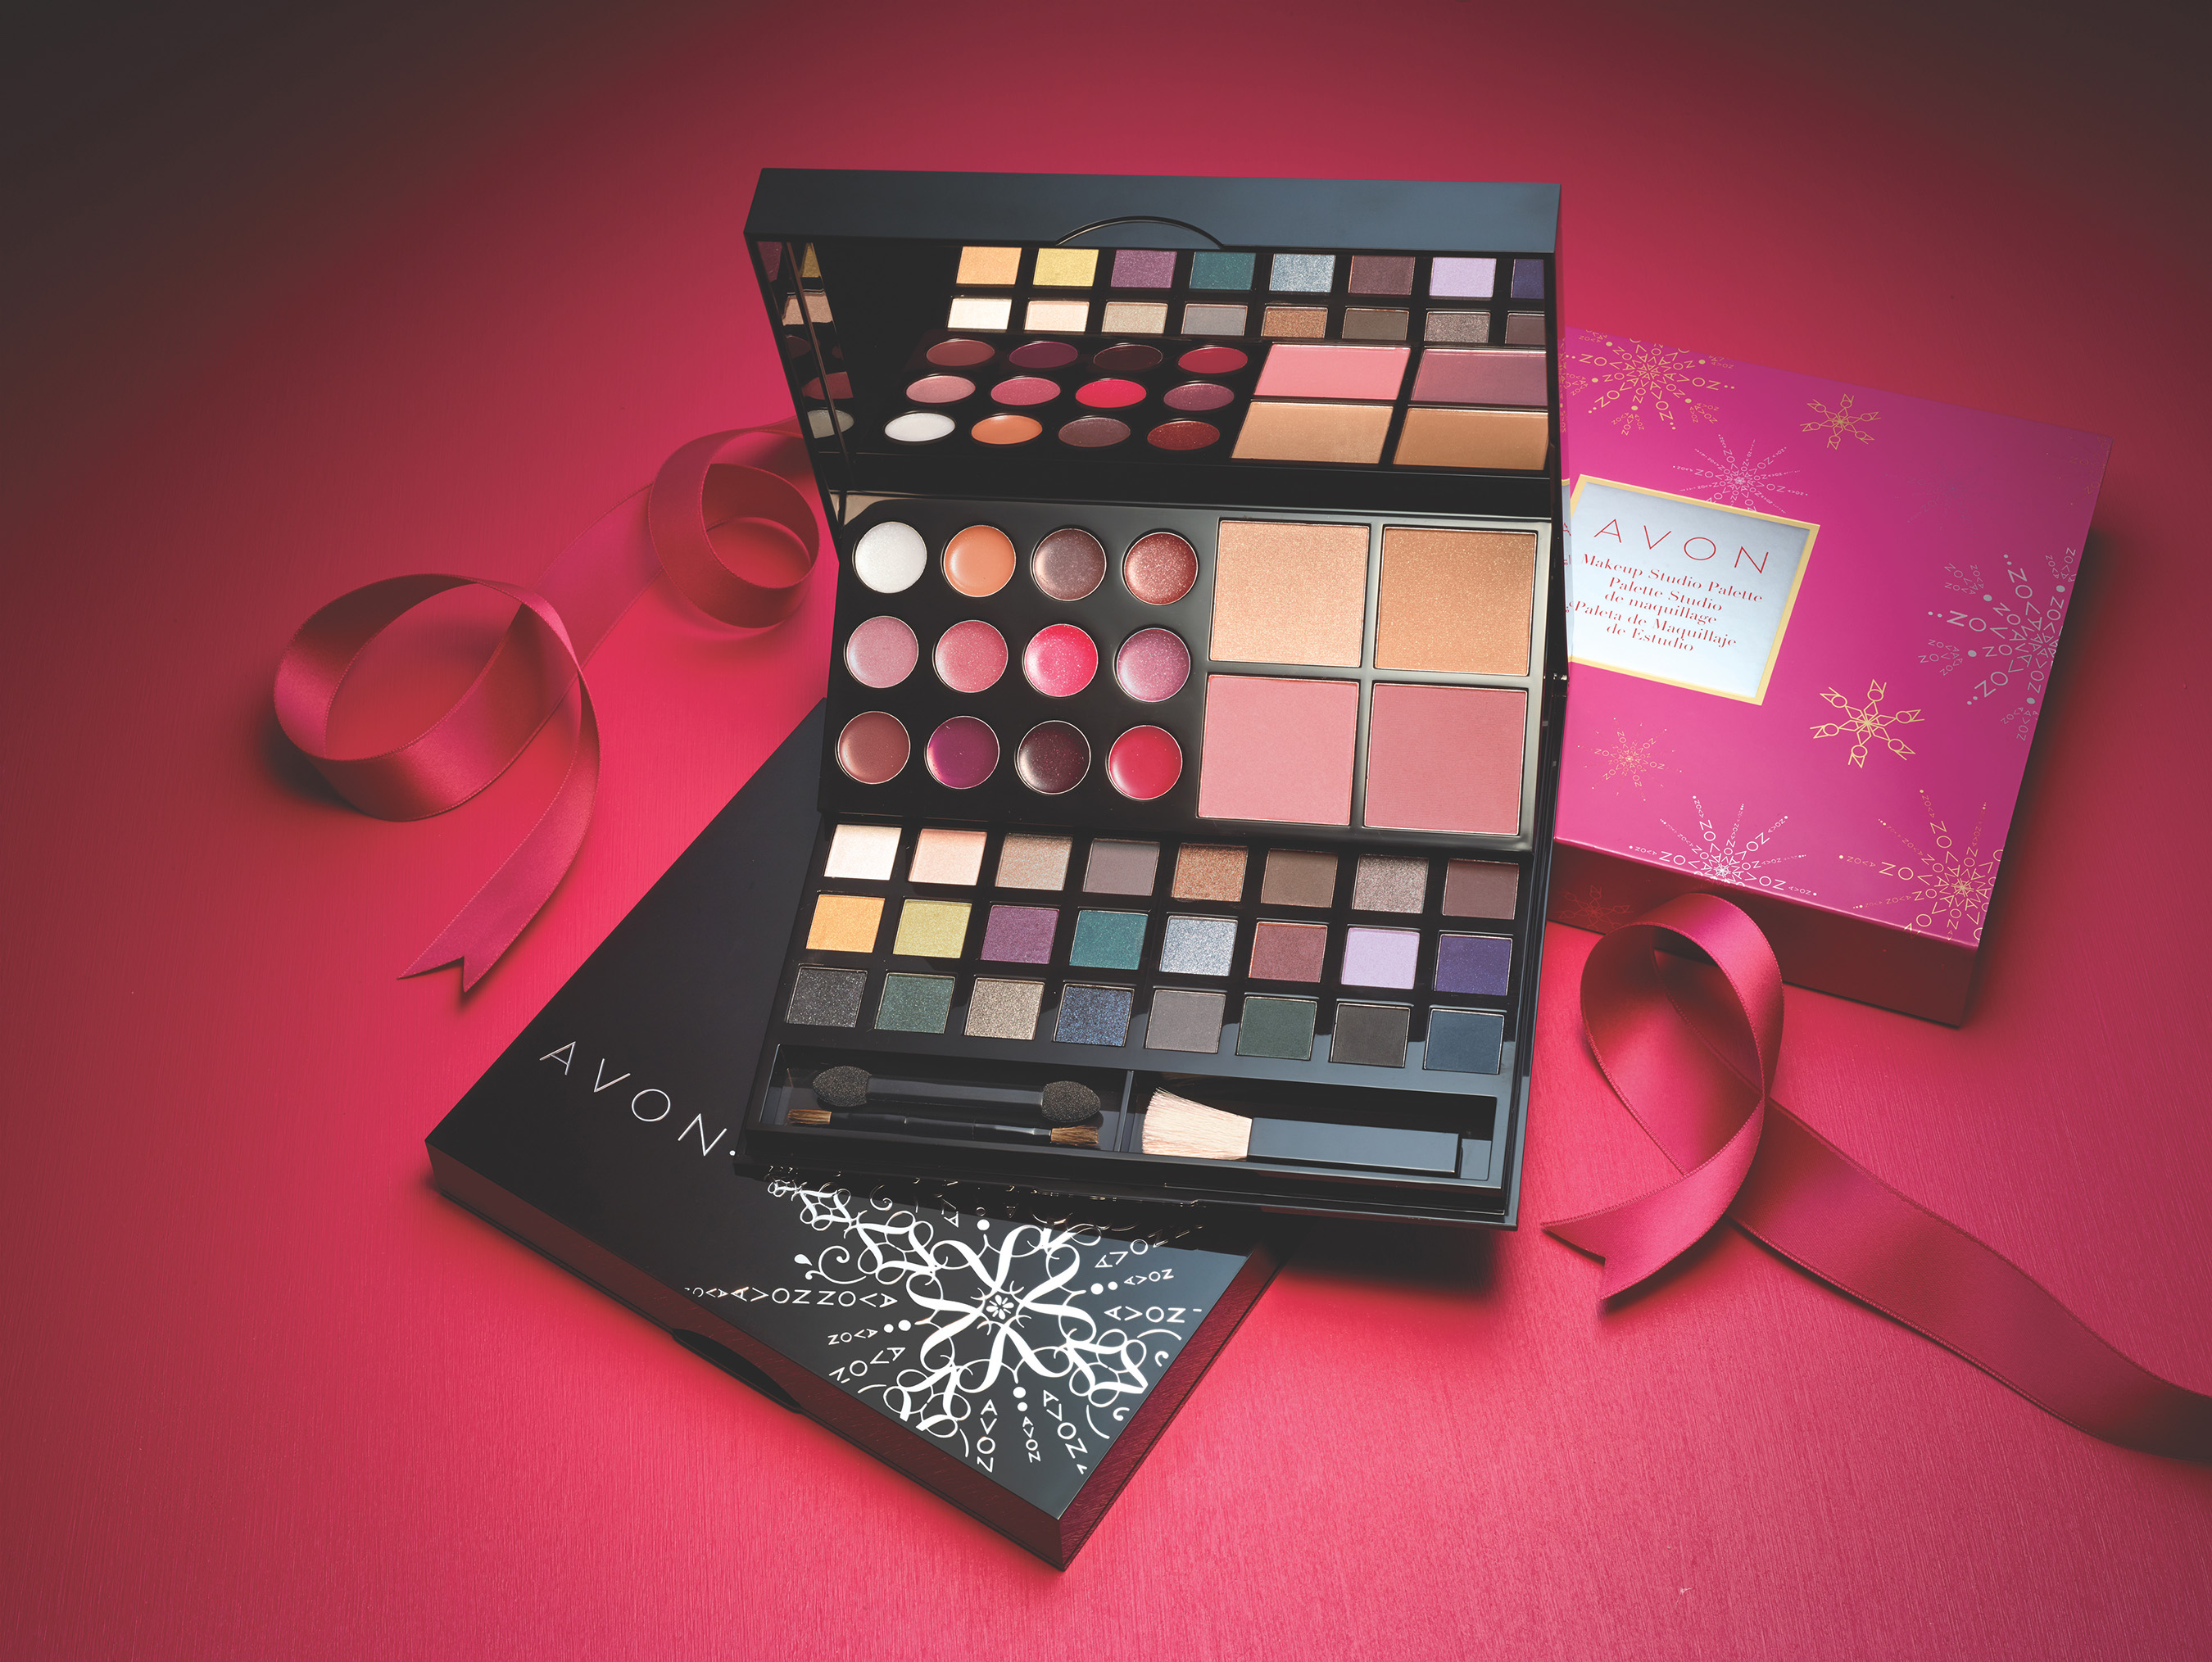 Top Avon And Mark Holiday Gifts Unveiled On Avon